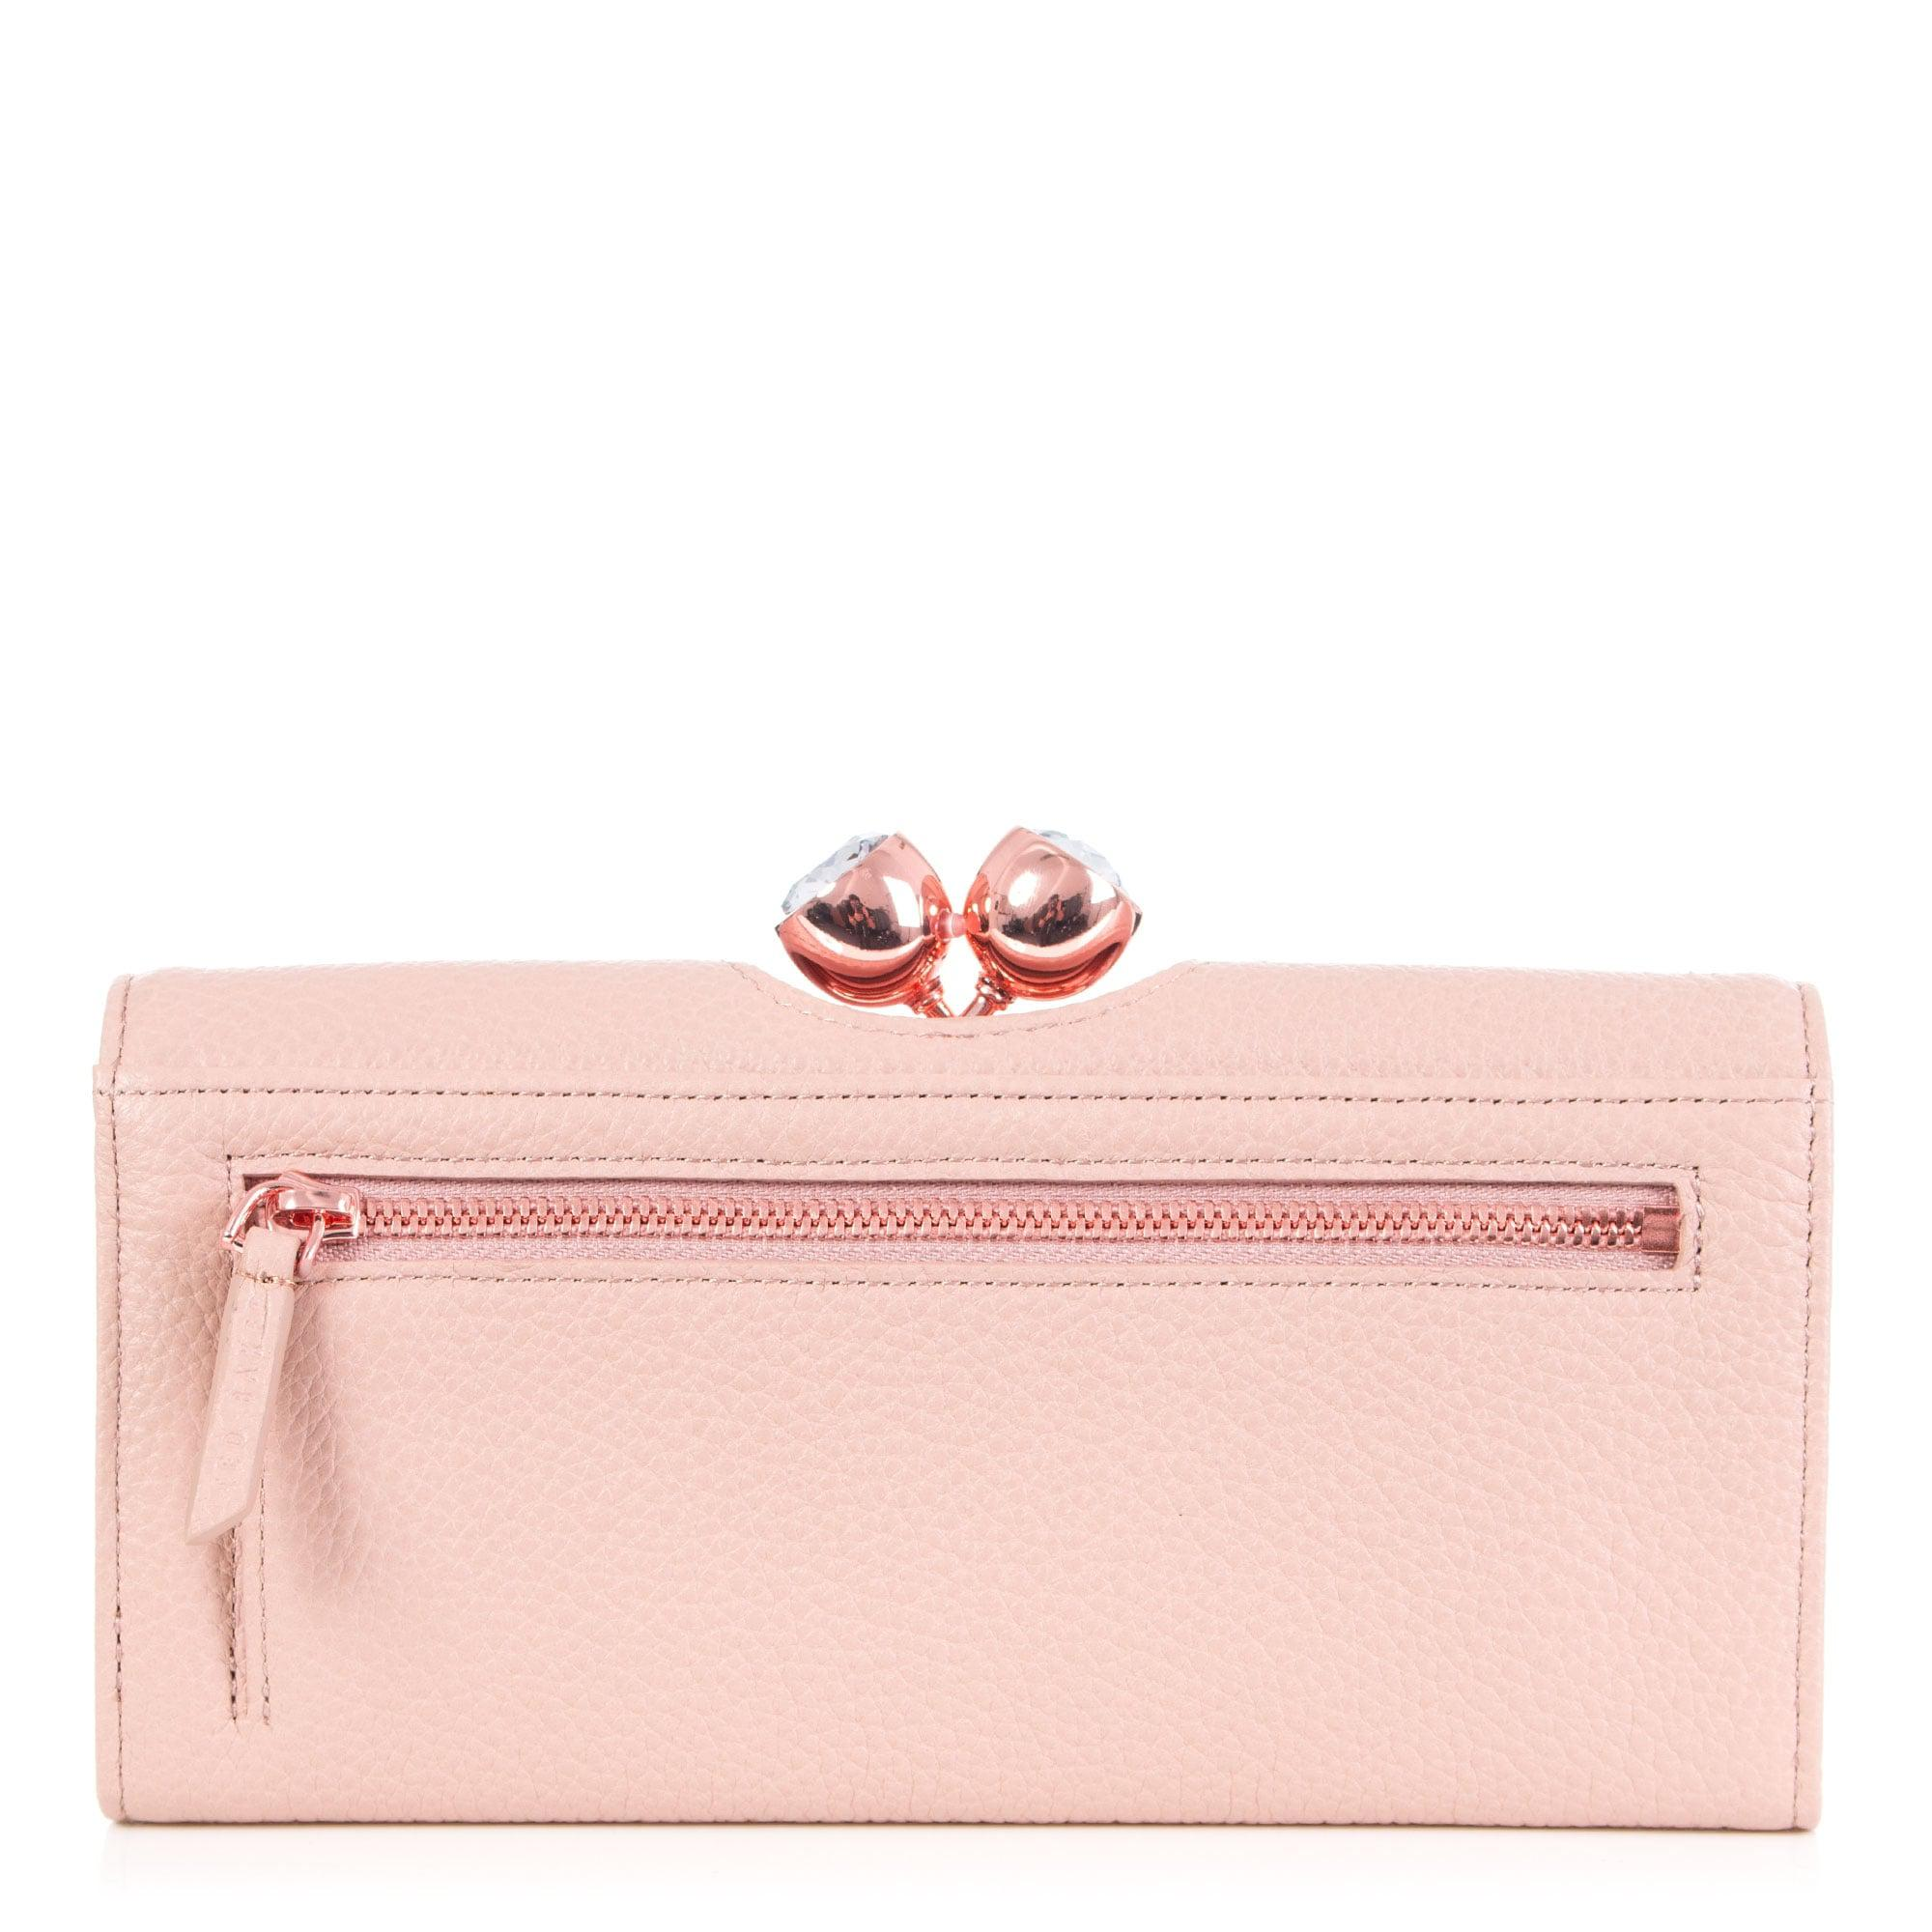 bcdae198795 Ted Baker Tammy Textured Leather Bobble Purse in Pink - Lyst